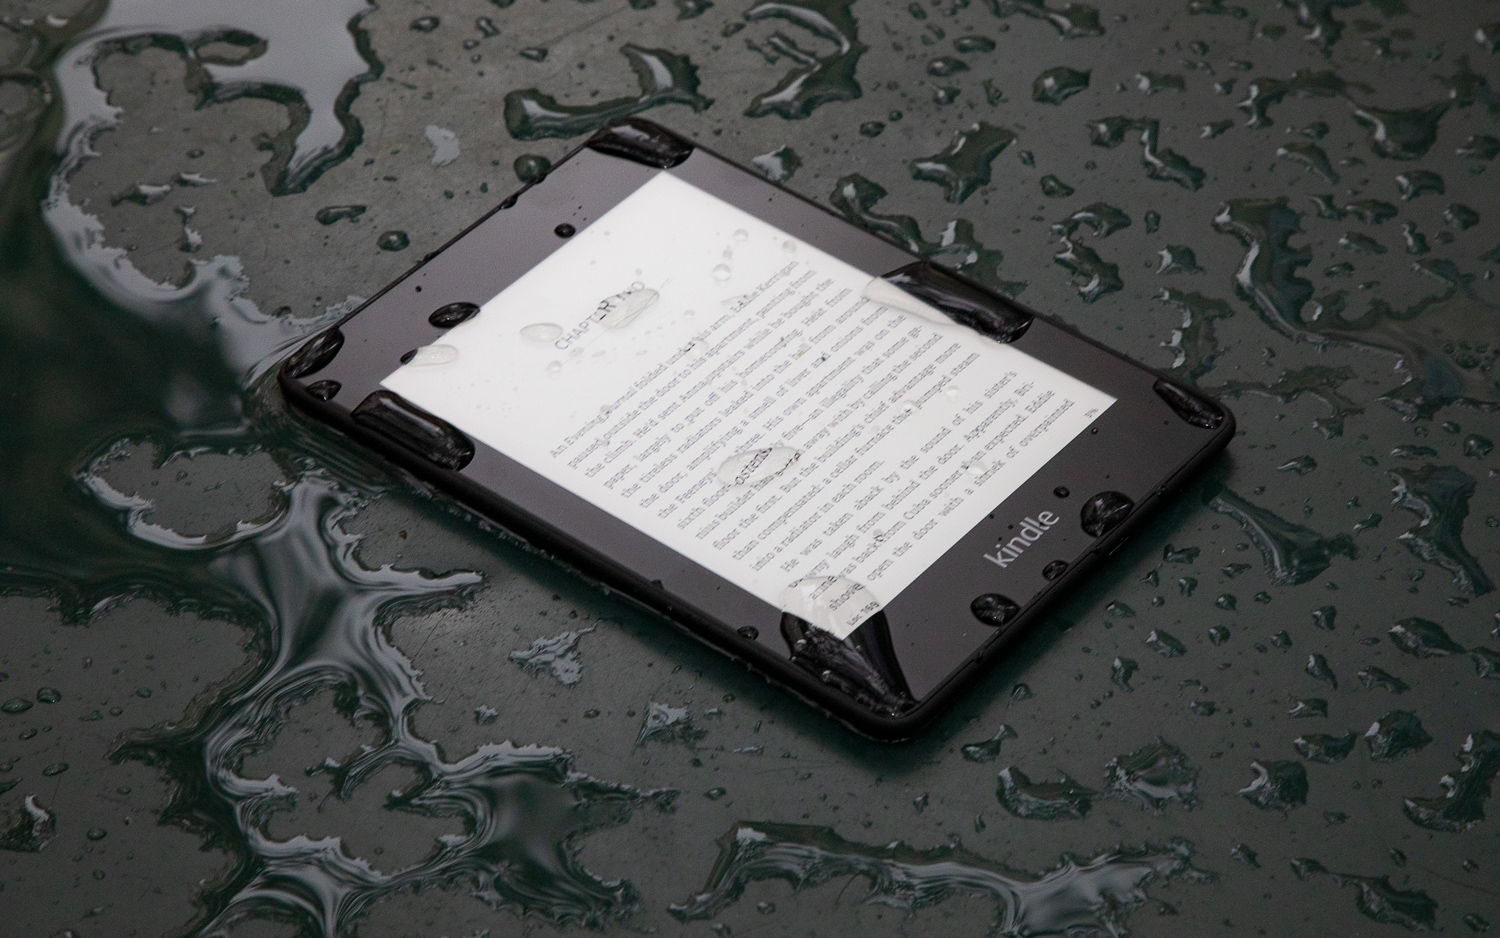 Amazon Kindle Paperwhite (2018) Review - Full Review and